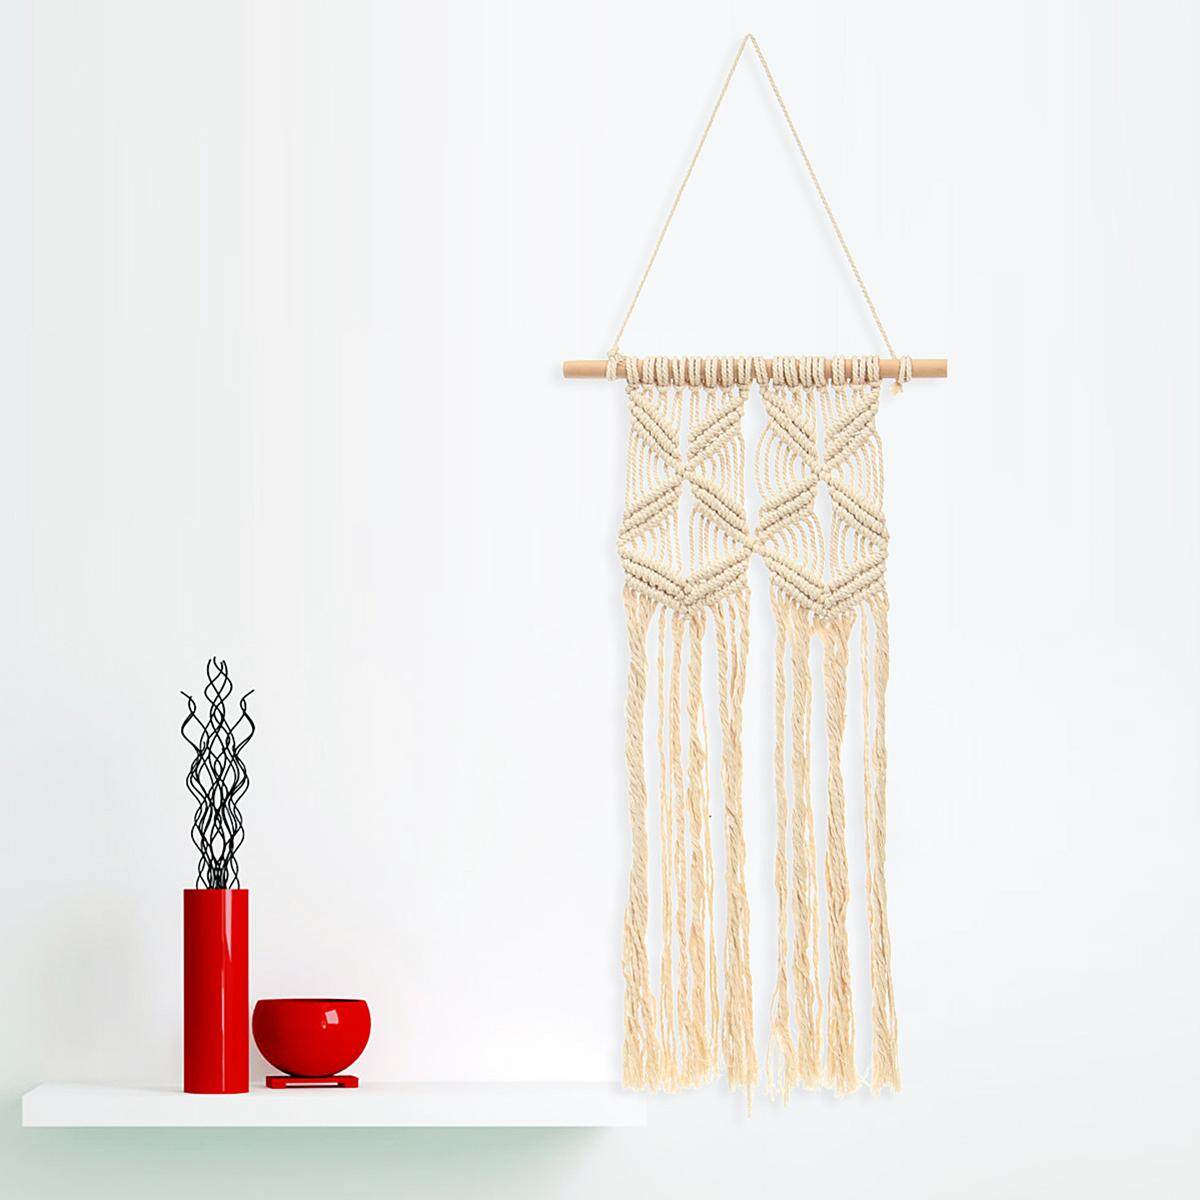 【Free Shipping + Flash Deal】Bohemian Macrame Tassel Woven Wall Hanging Handmade Tapestry Knitting Decor